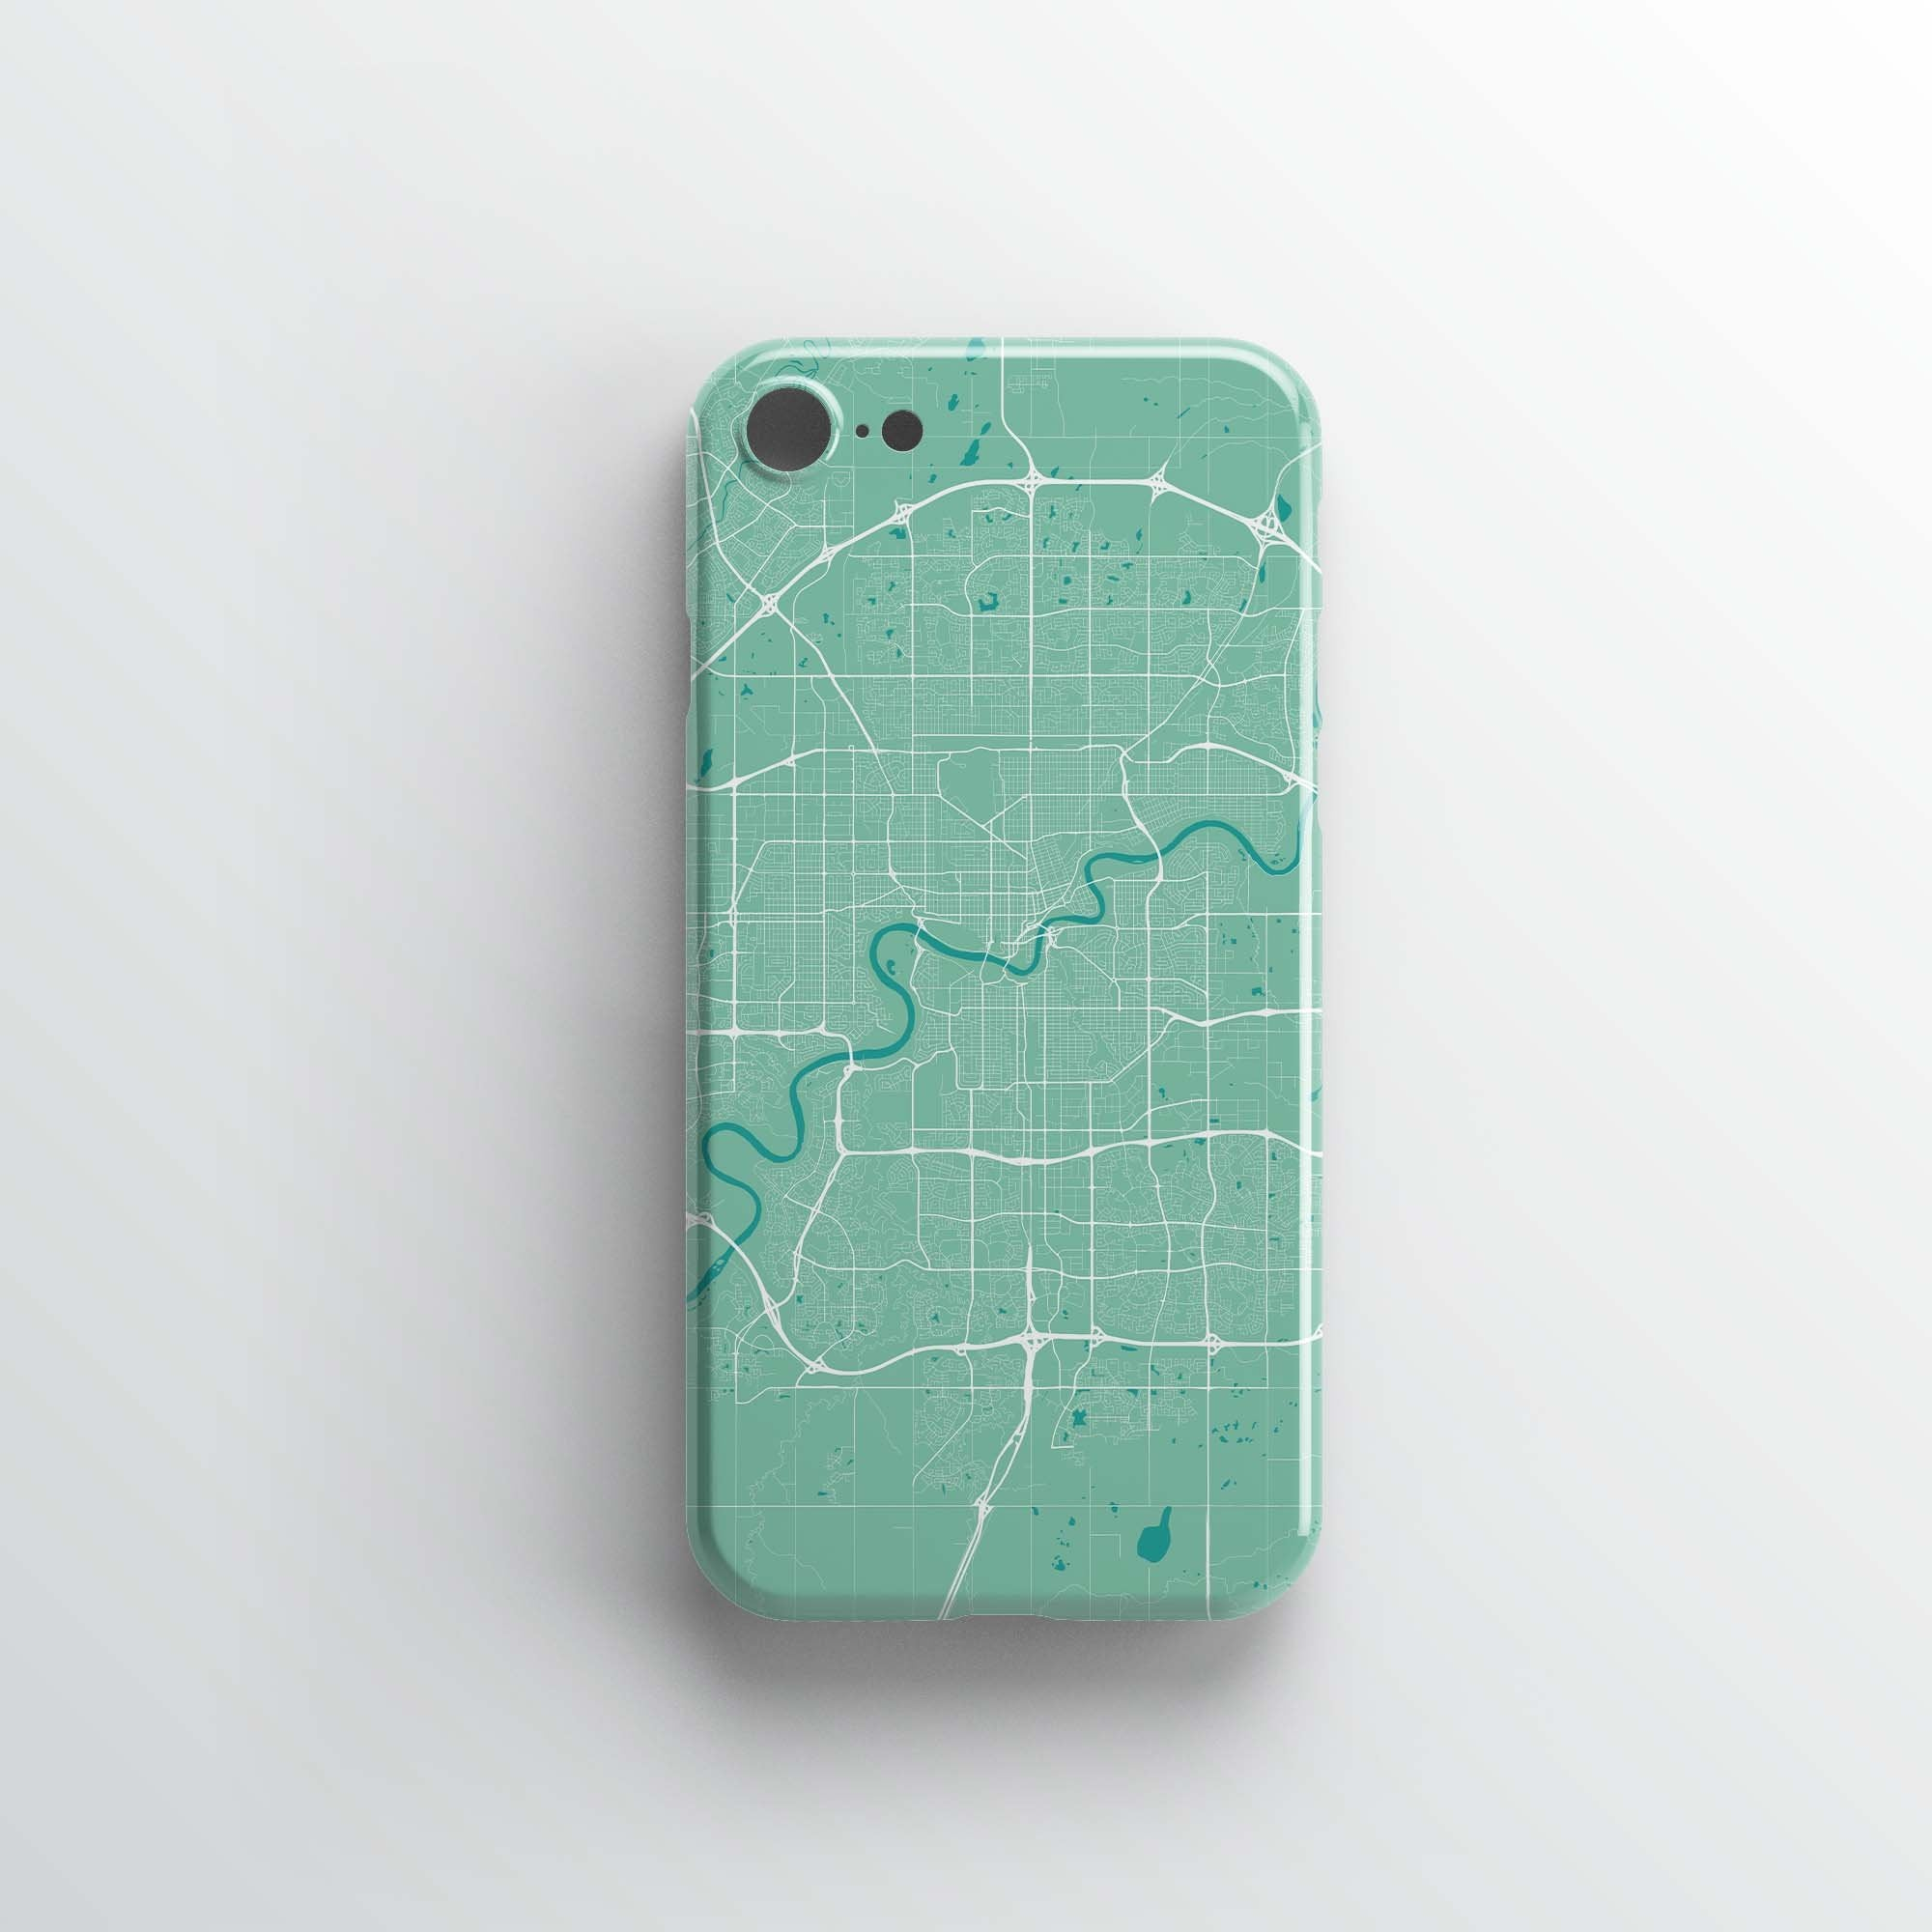 Edmonton City iPhone Case - Point Two Design